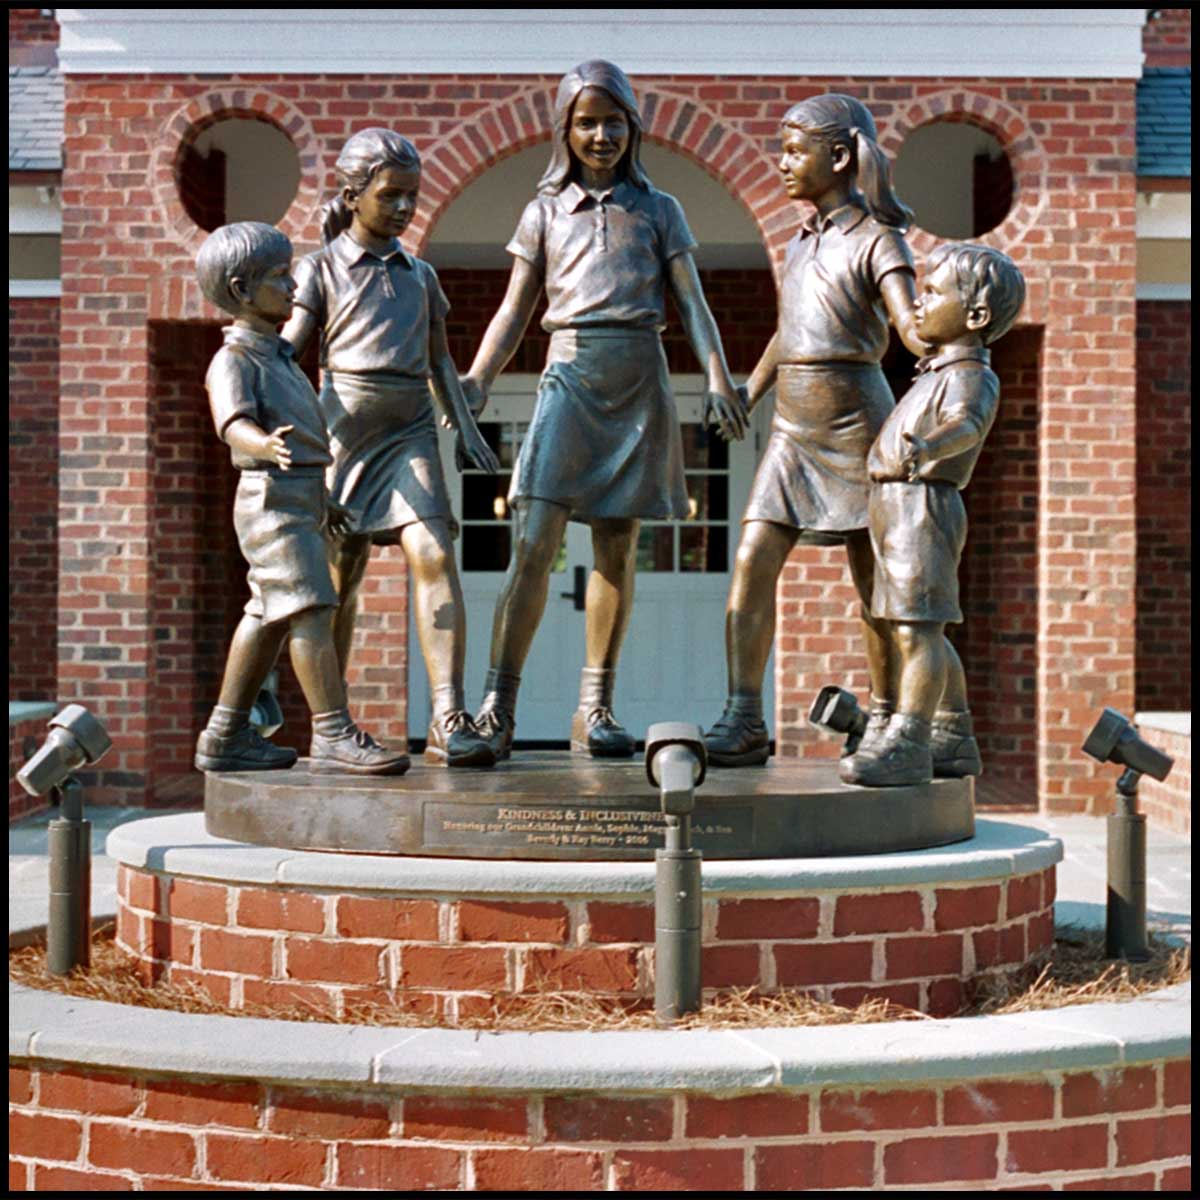 photo of bronze sculpture of five children standing in half circle holding hands atop brick-faced pedestal